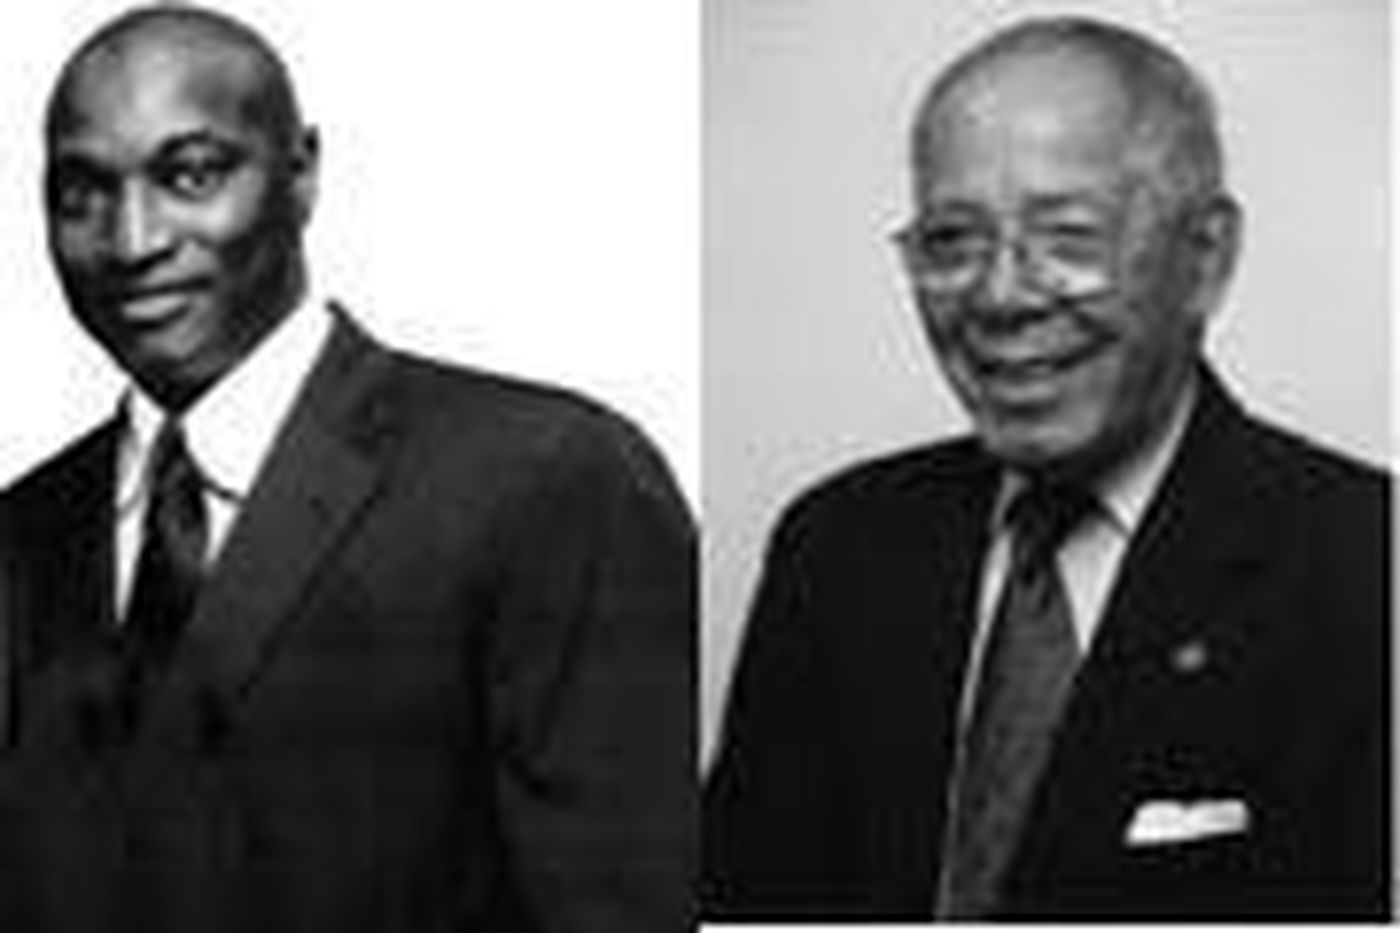 SC Black Hall of Fame to induct 11